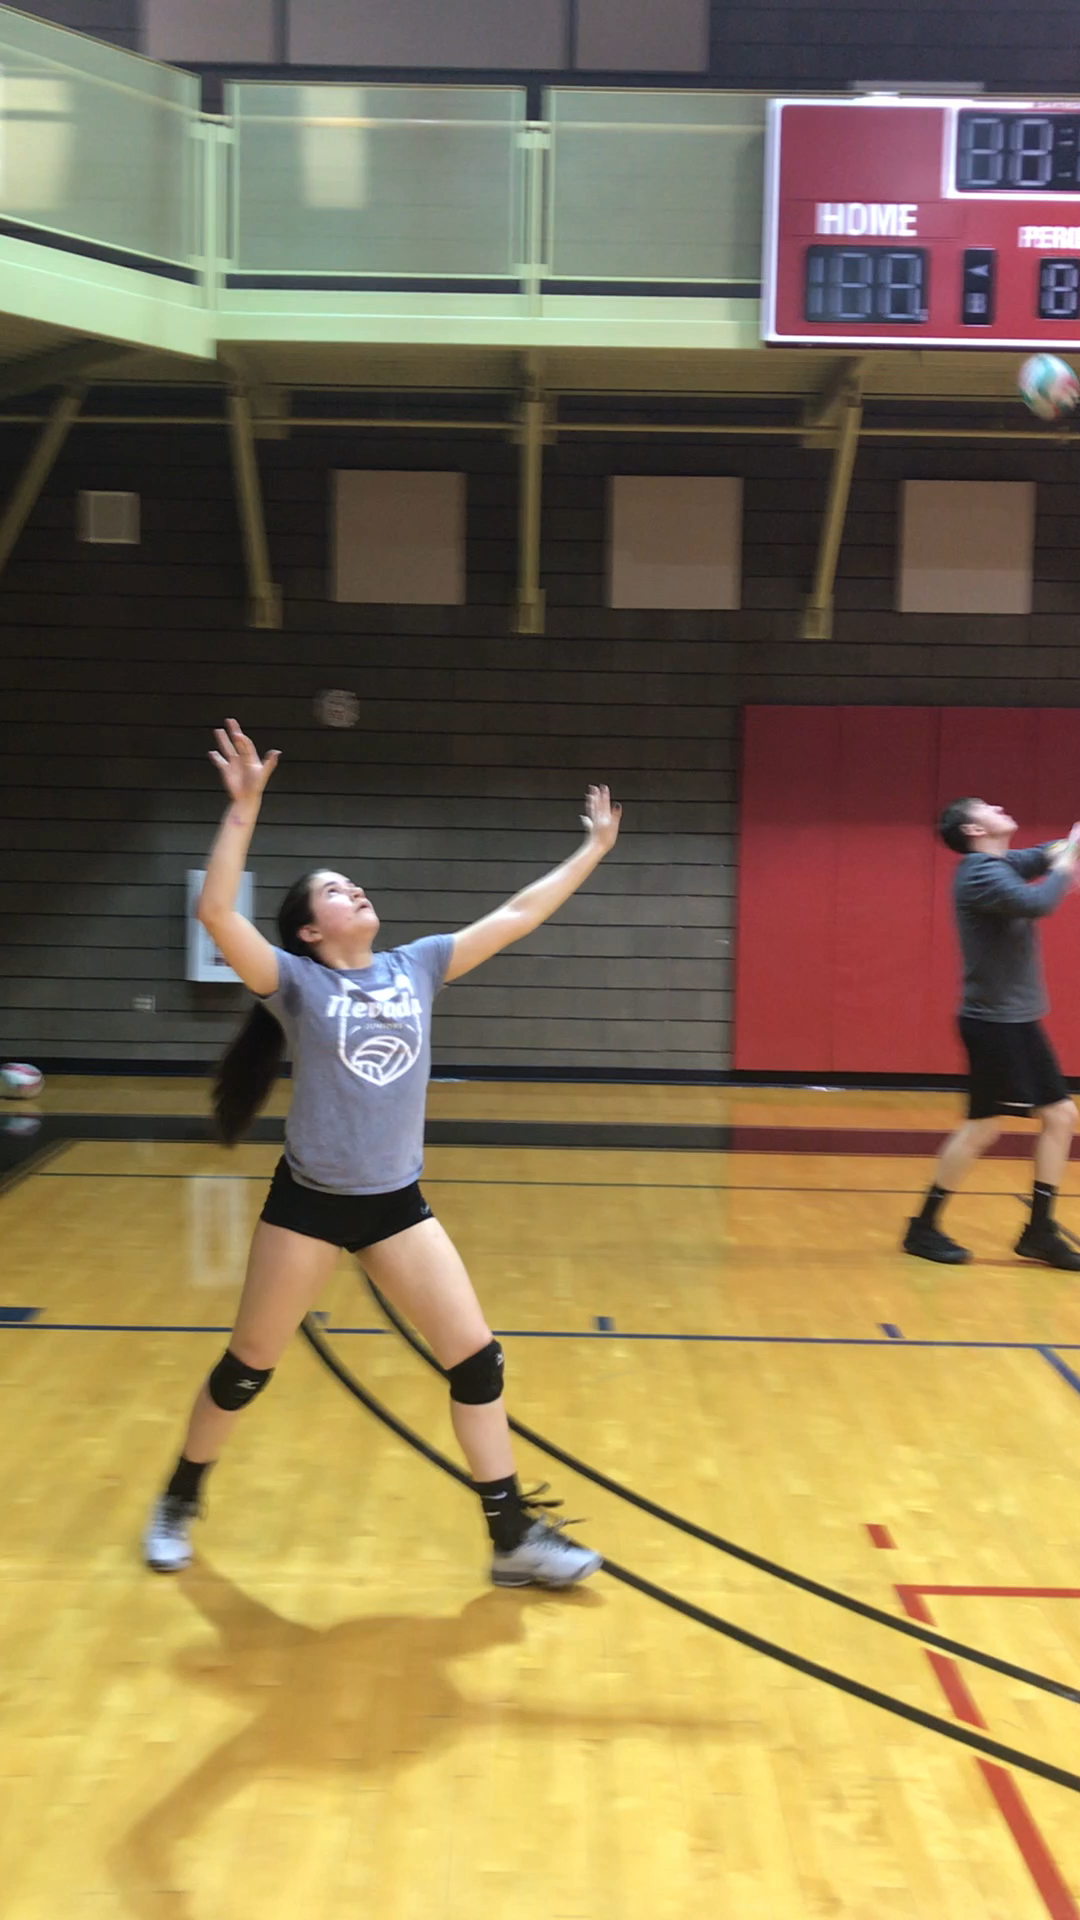 Basic Volleyball Drills For Hitting And Digging To Help You Sideout Video Volleyball Drills Coaching Volleyball Volleyball Training